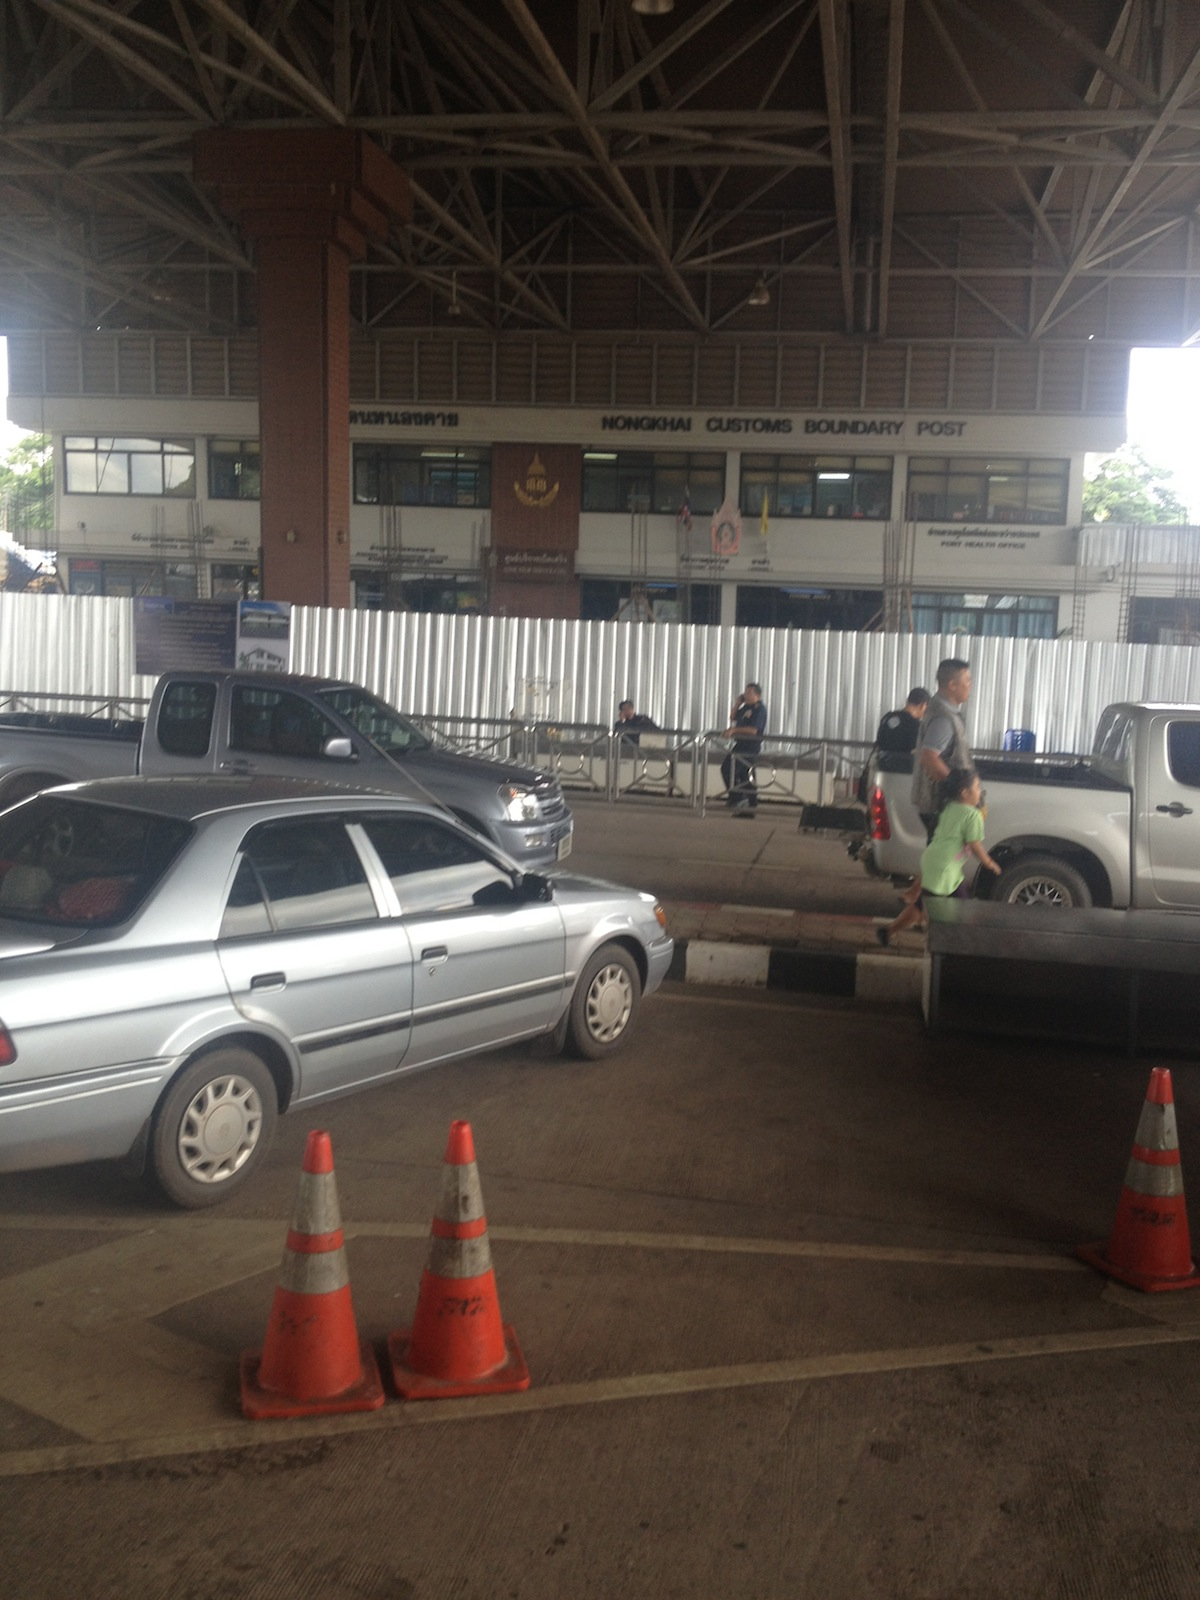 Crossing into Thailand from Laos with Your Vehicle (At Vientiane / Nong Khai)